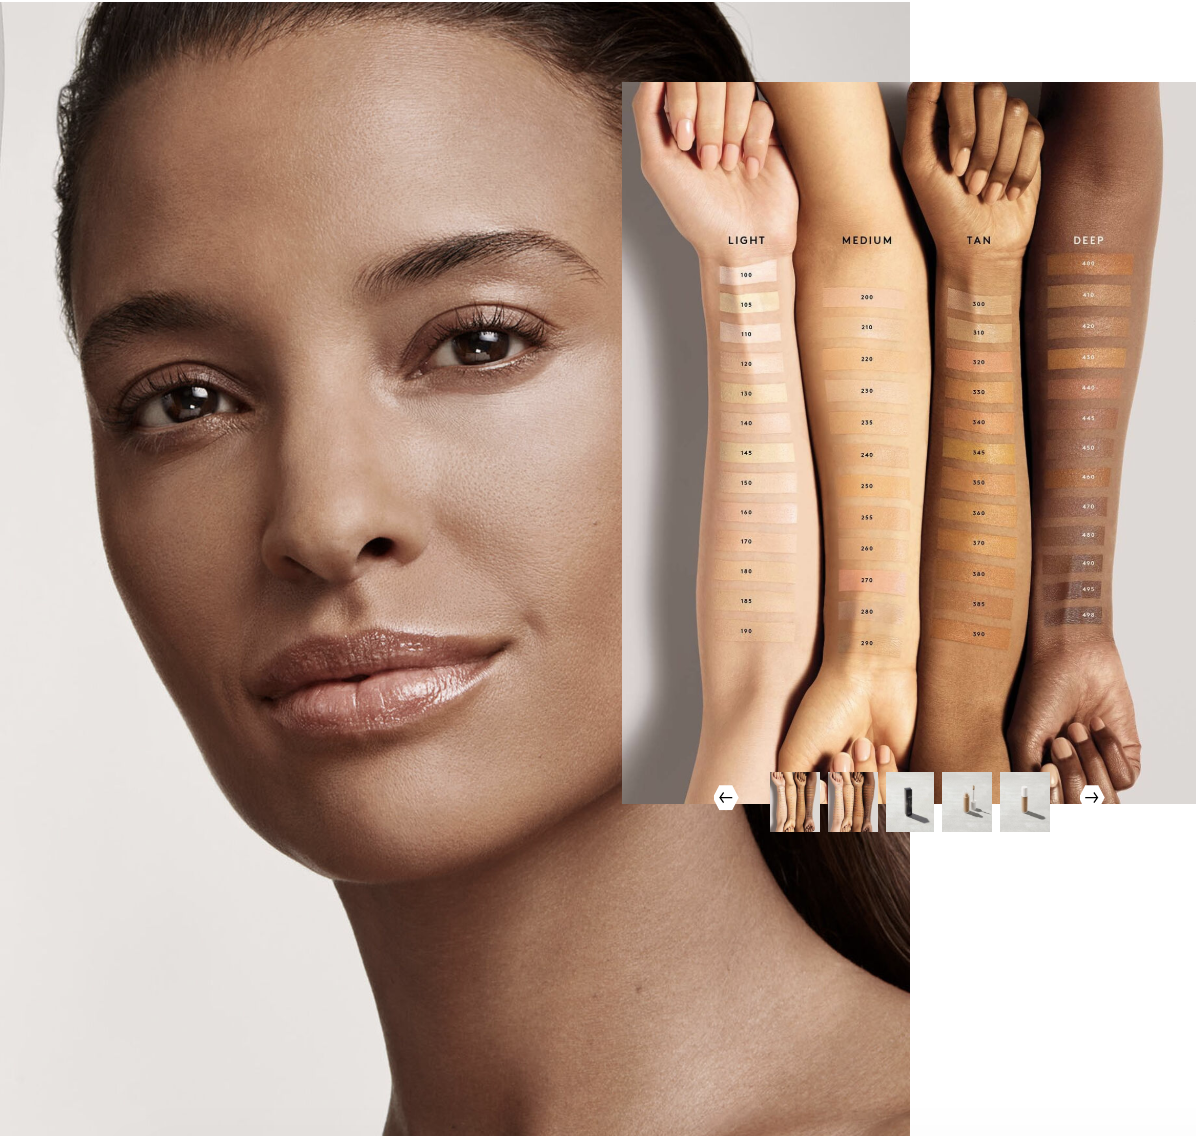 An advertisement for Fenty Beauty's Pro Filt'r Instant Retouch Concealer featuring a model and arm swatches.